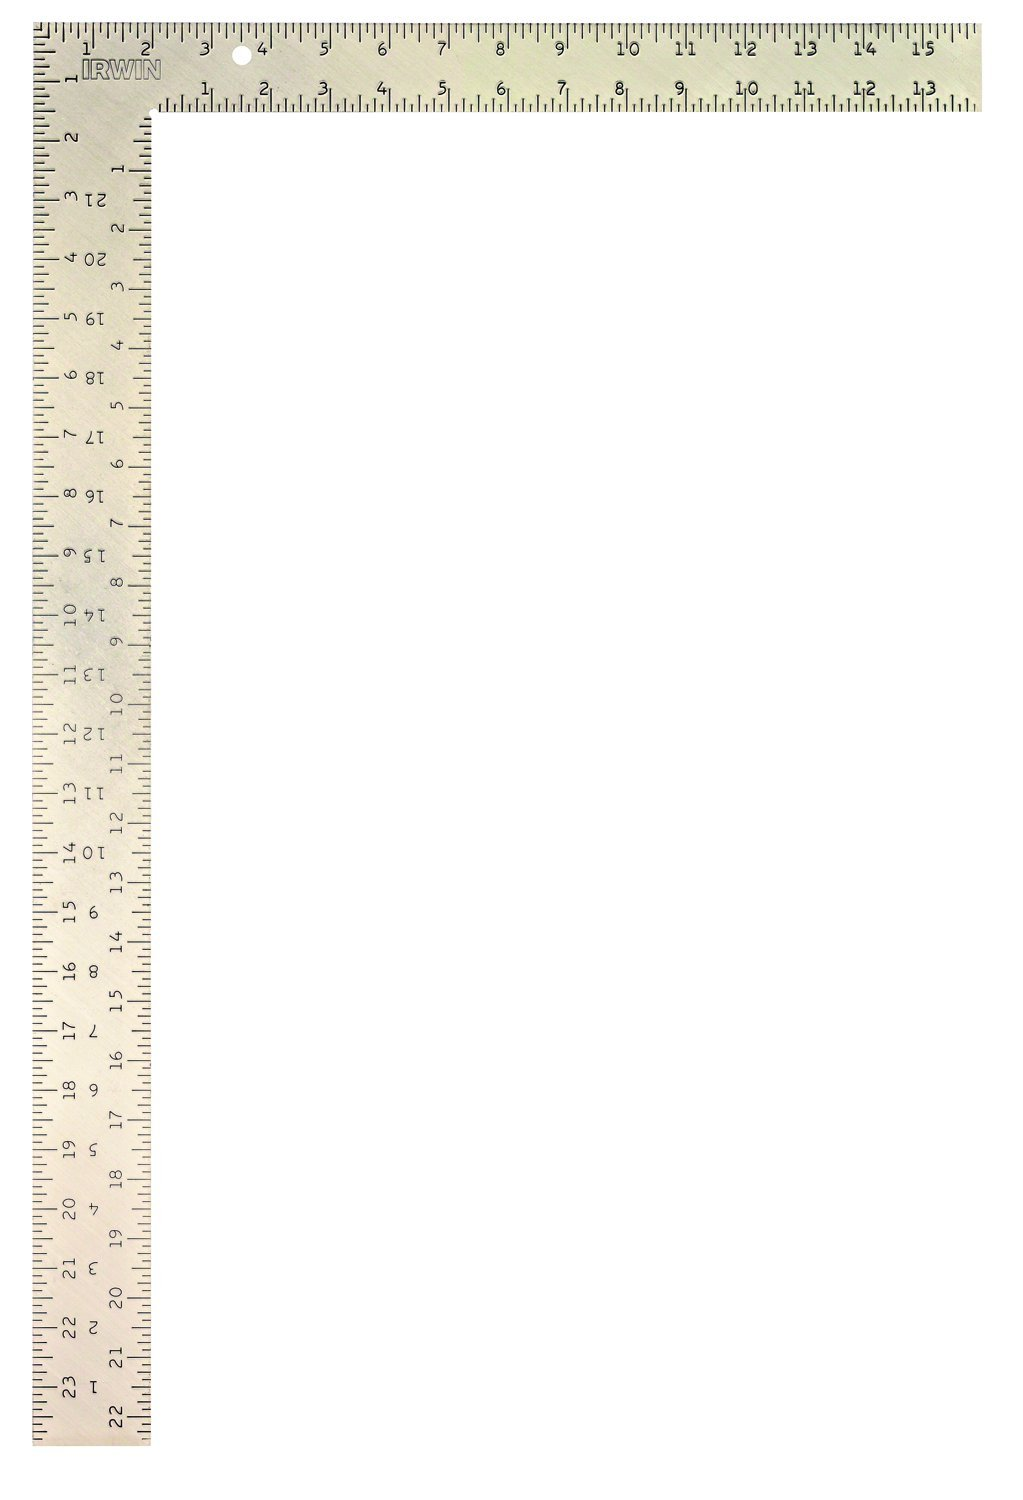 IRWIN Tools Carpenter Square Steel 16 Inch by 24 Inch 1794461